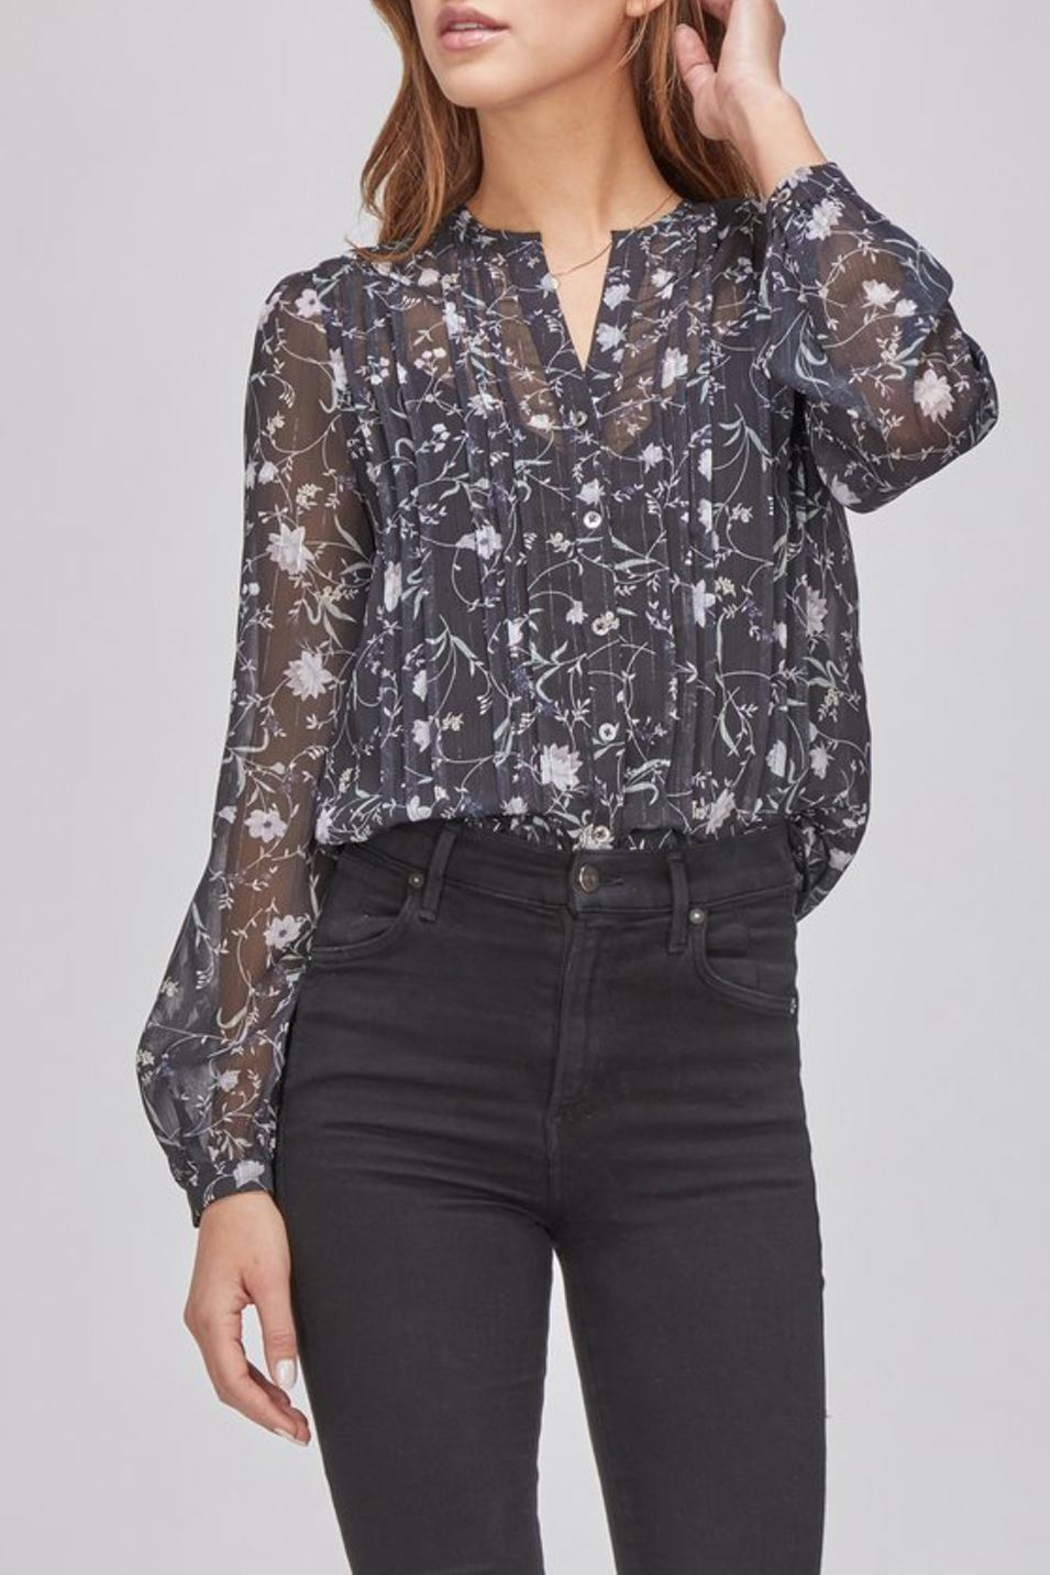 Greylin Floral Button-Up Blouse - Front Full Image